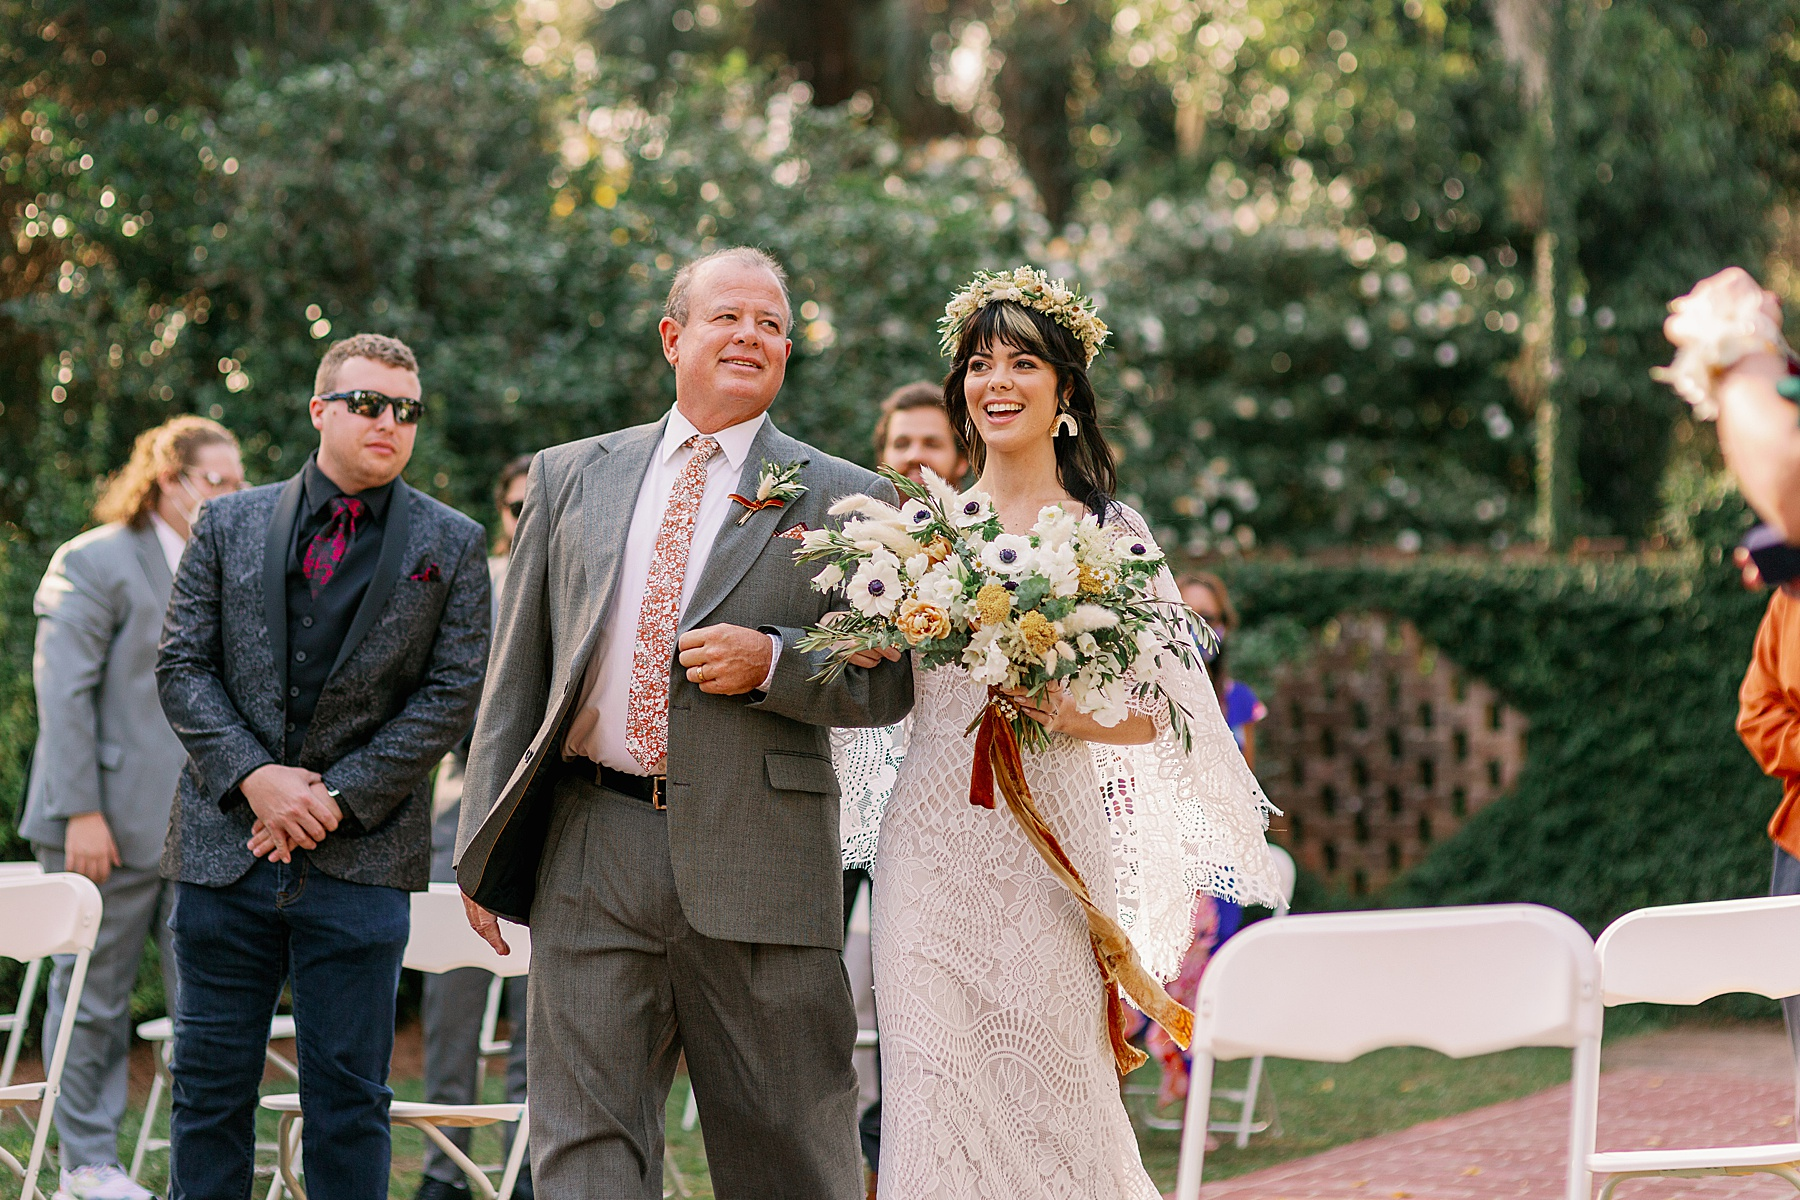 Bride walks down the aisle with her dad as she smiles at her groom